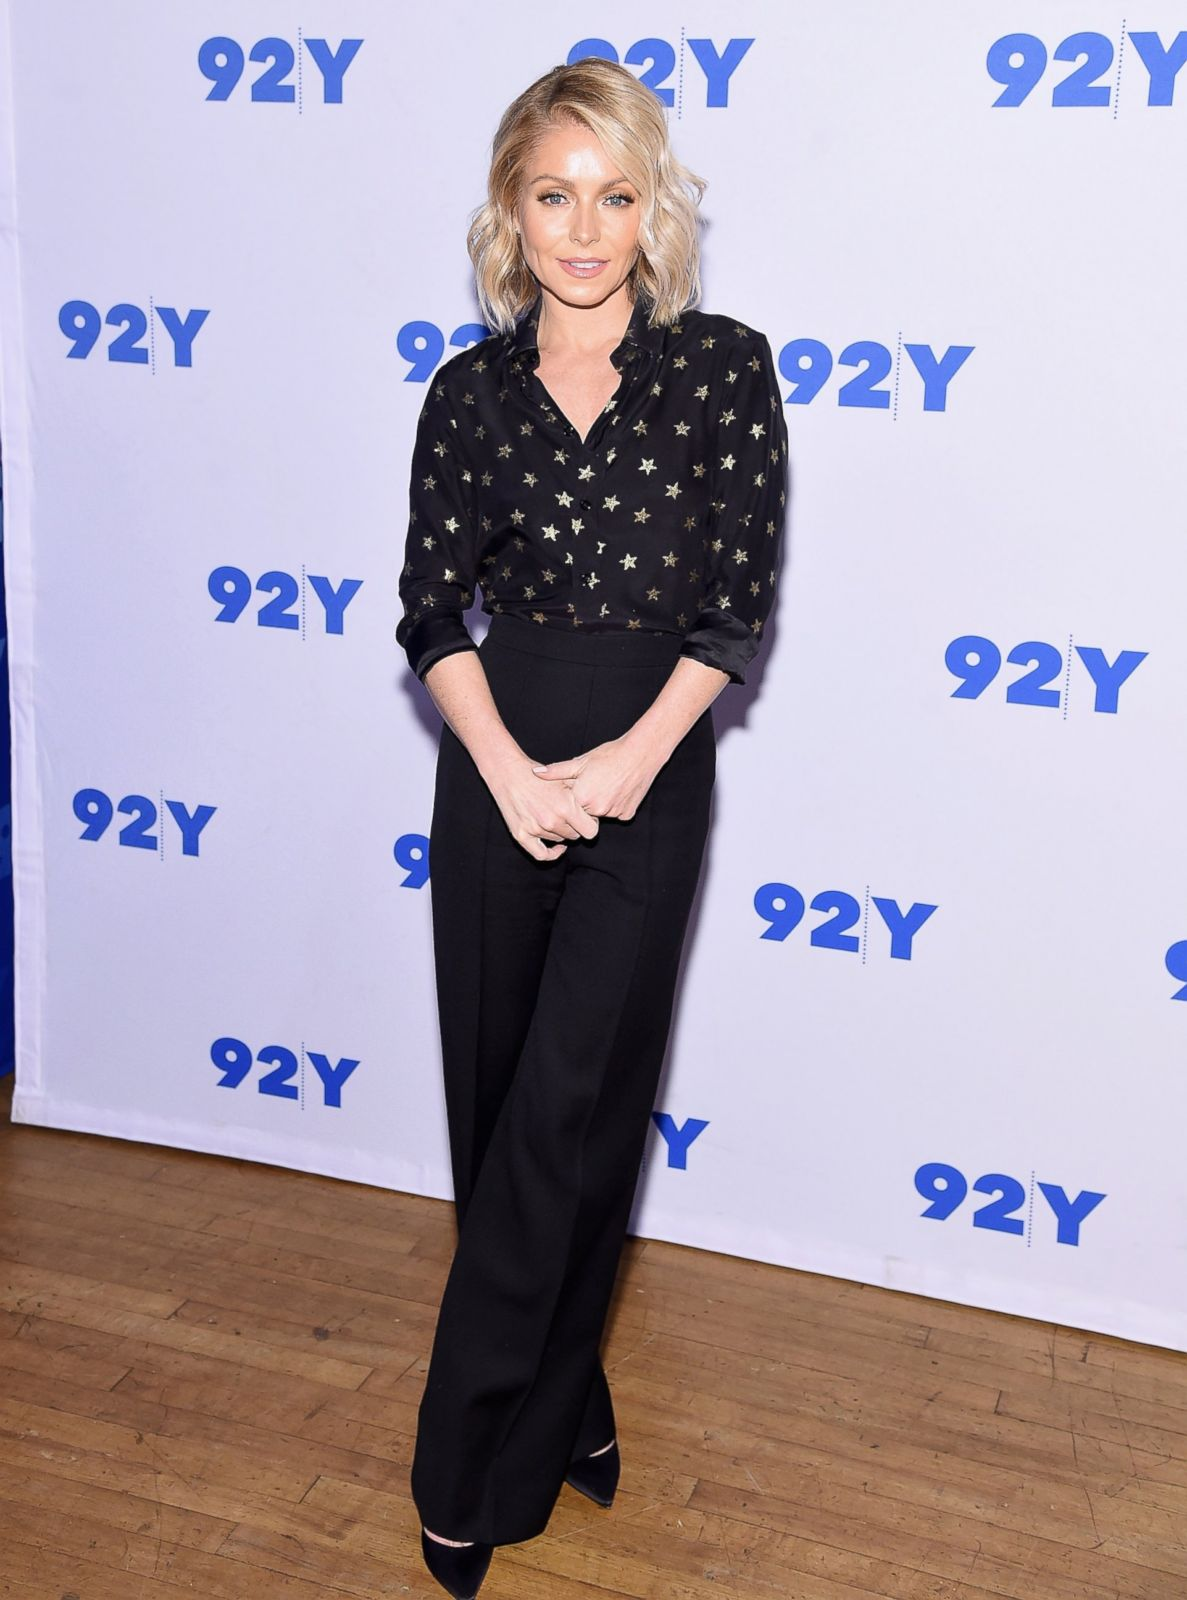 Kelly Ripa Makes A Starry Red Carpet Appearance In